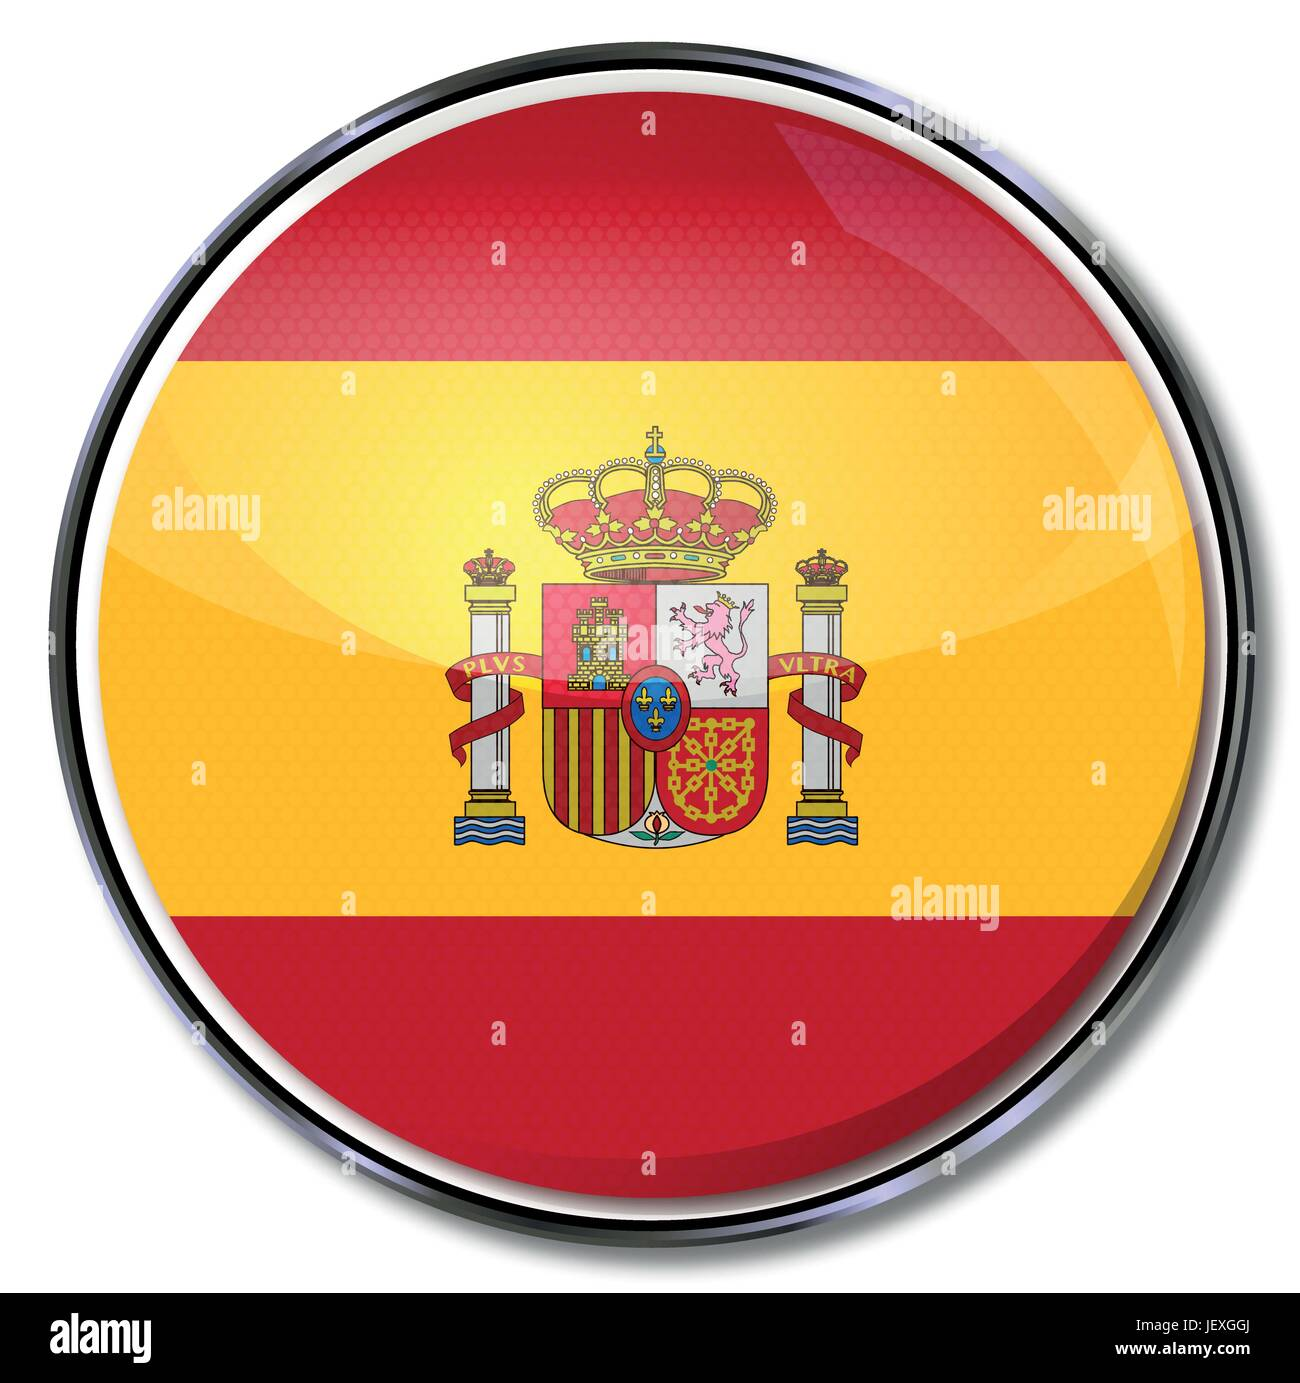 spain, flag, button, madrid, spaniard, kingdom, hispanic, spanish, euro, Stock Vector